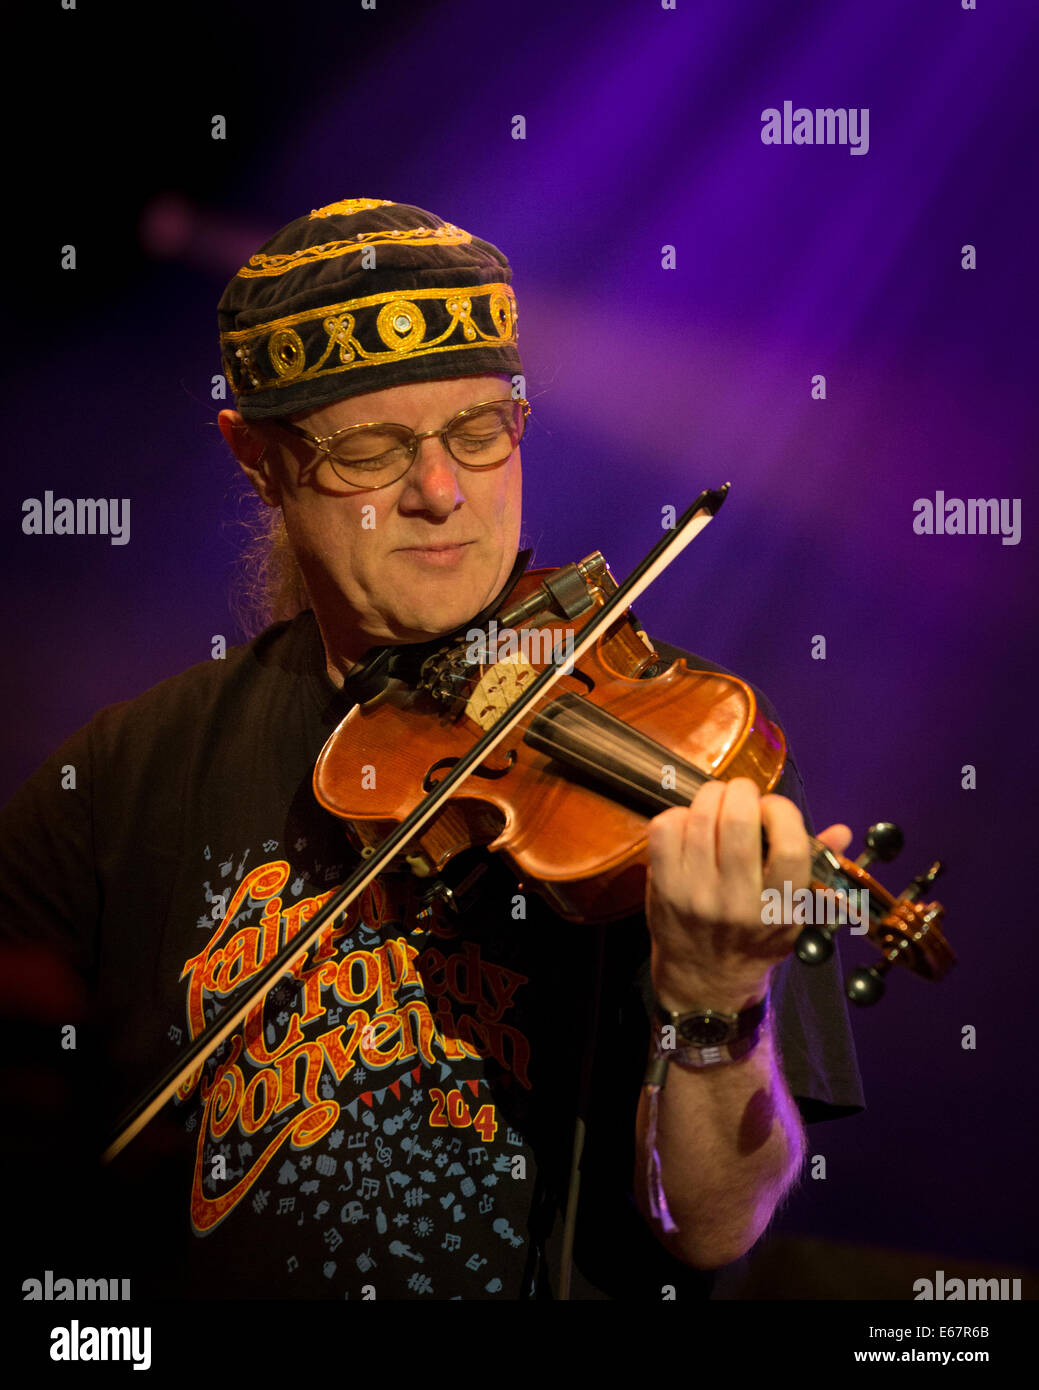 Ric Sanders of Fairport Convention playing a fiddle on stage at Fairport's Cropredy Convention 2014 - Stock Image